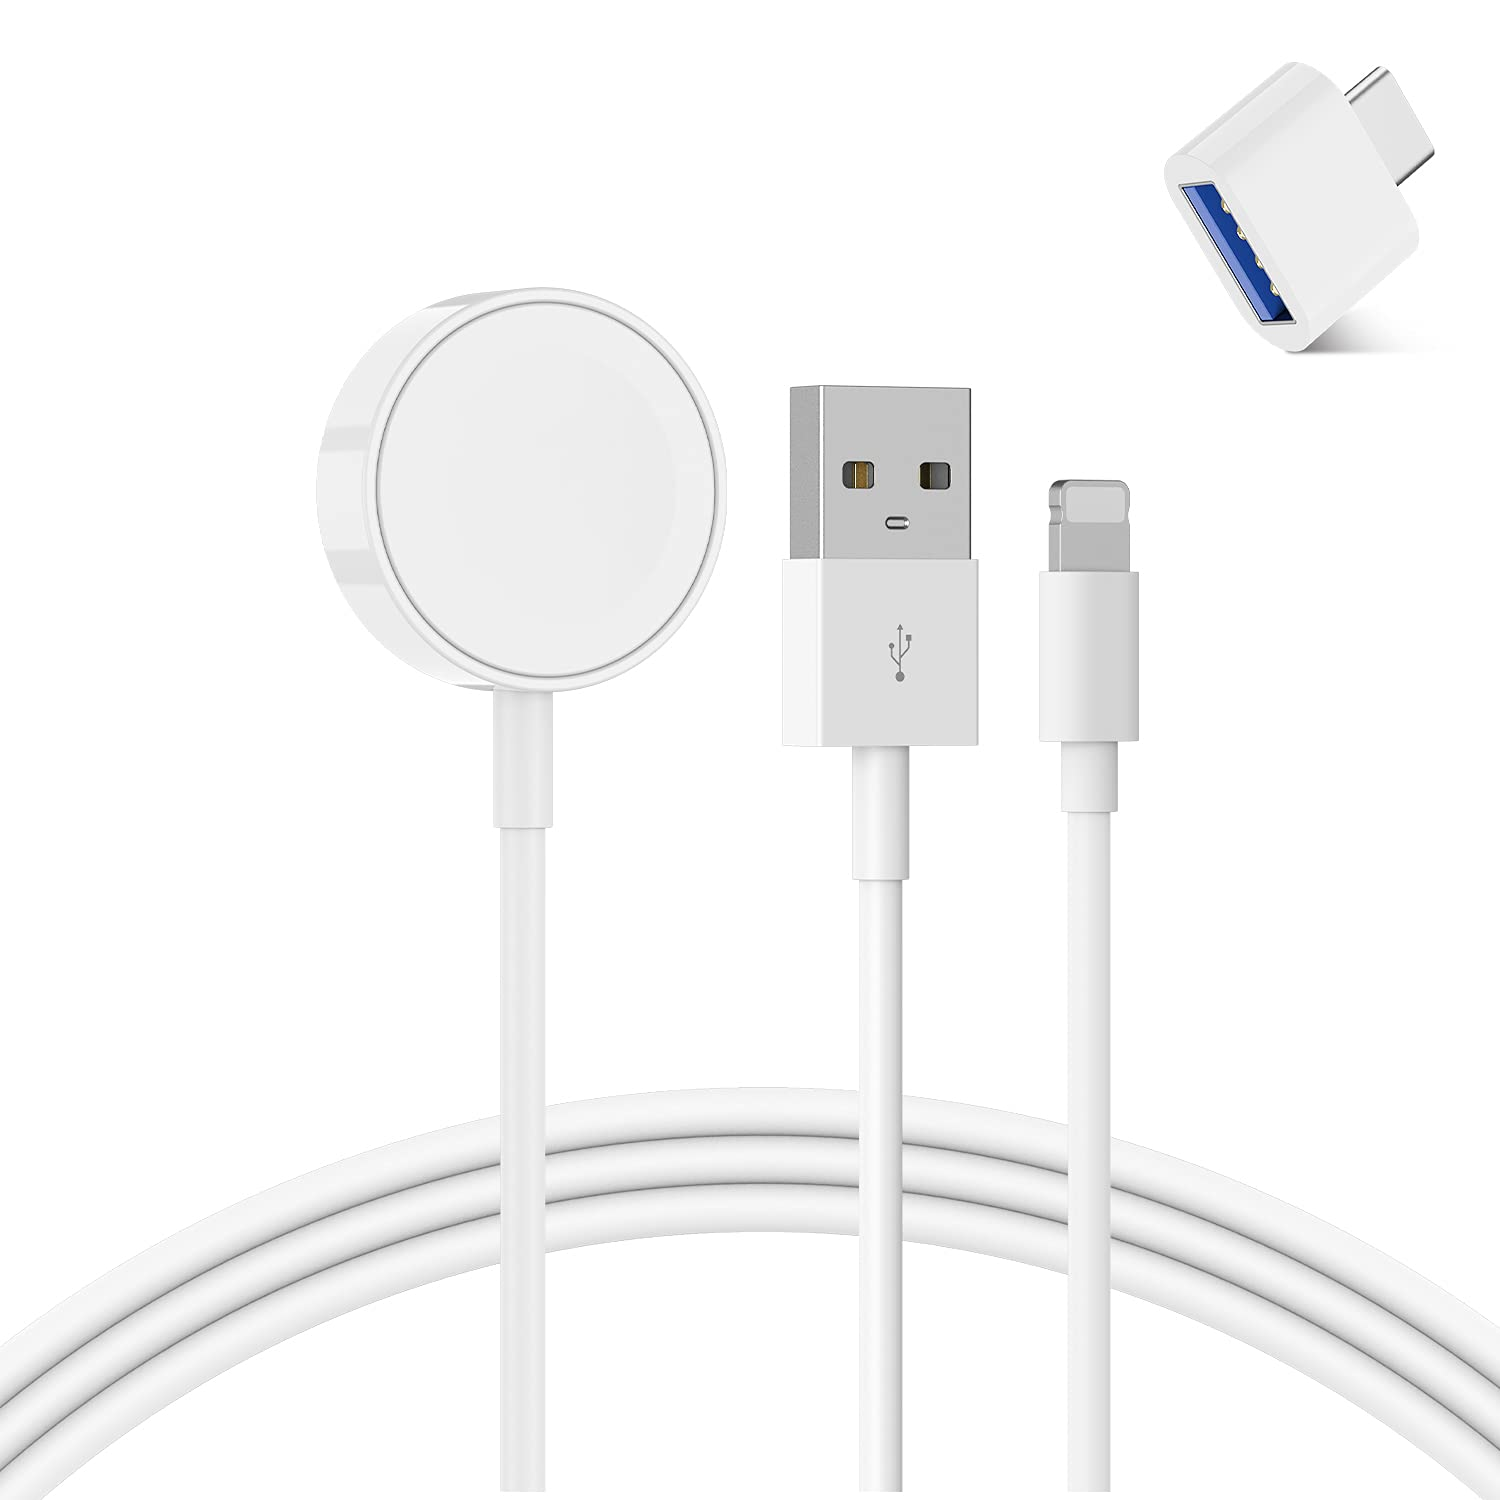 Watch Charger Magnetic Watch Charger Wireless Charging Cable Cord Compatible with Apple Watch Series SE/6/5/4/3/2/1 &iPhone 12/11/11 Pro MaxXS/Max/X/8/7 &iPad Series 3.3FT (1M)